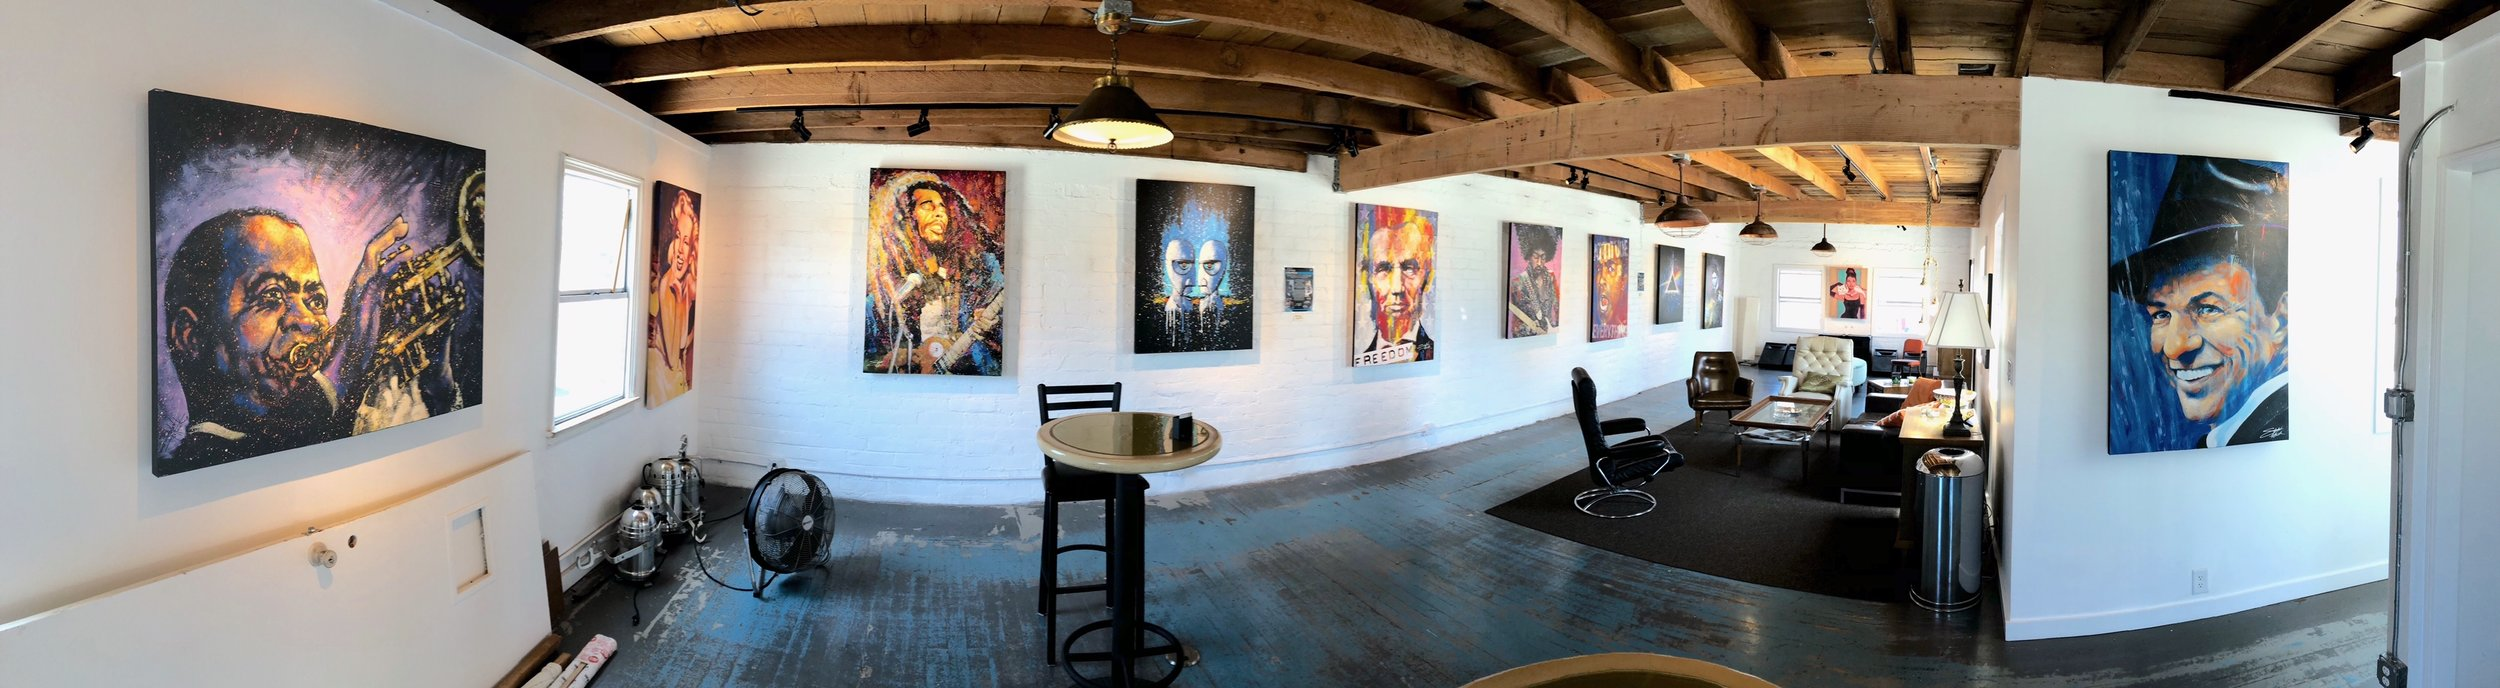 The upper studio gallery where local artist display their work.